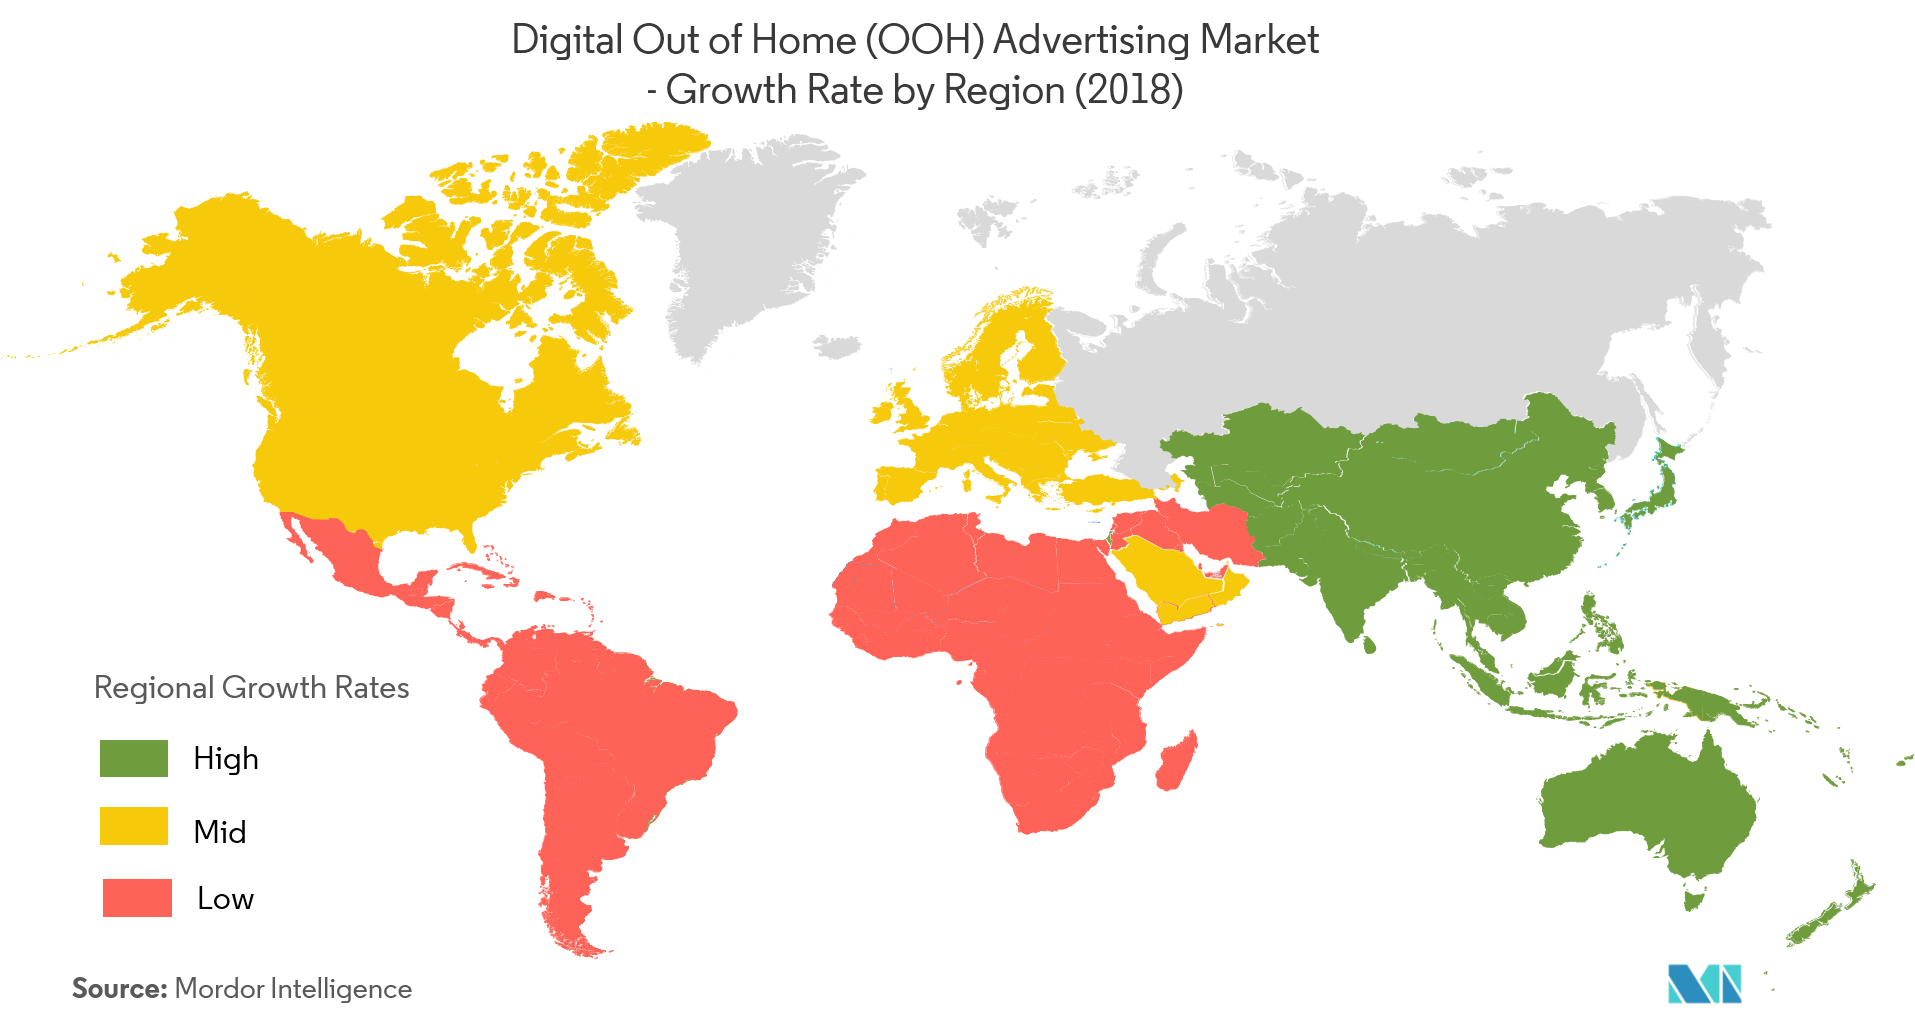 Digital Out of Home (OOH) Advertising Market Growth